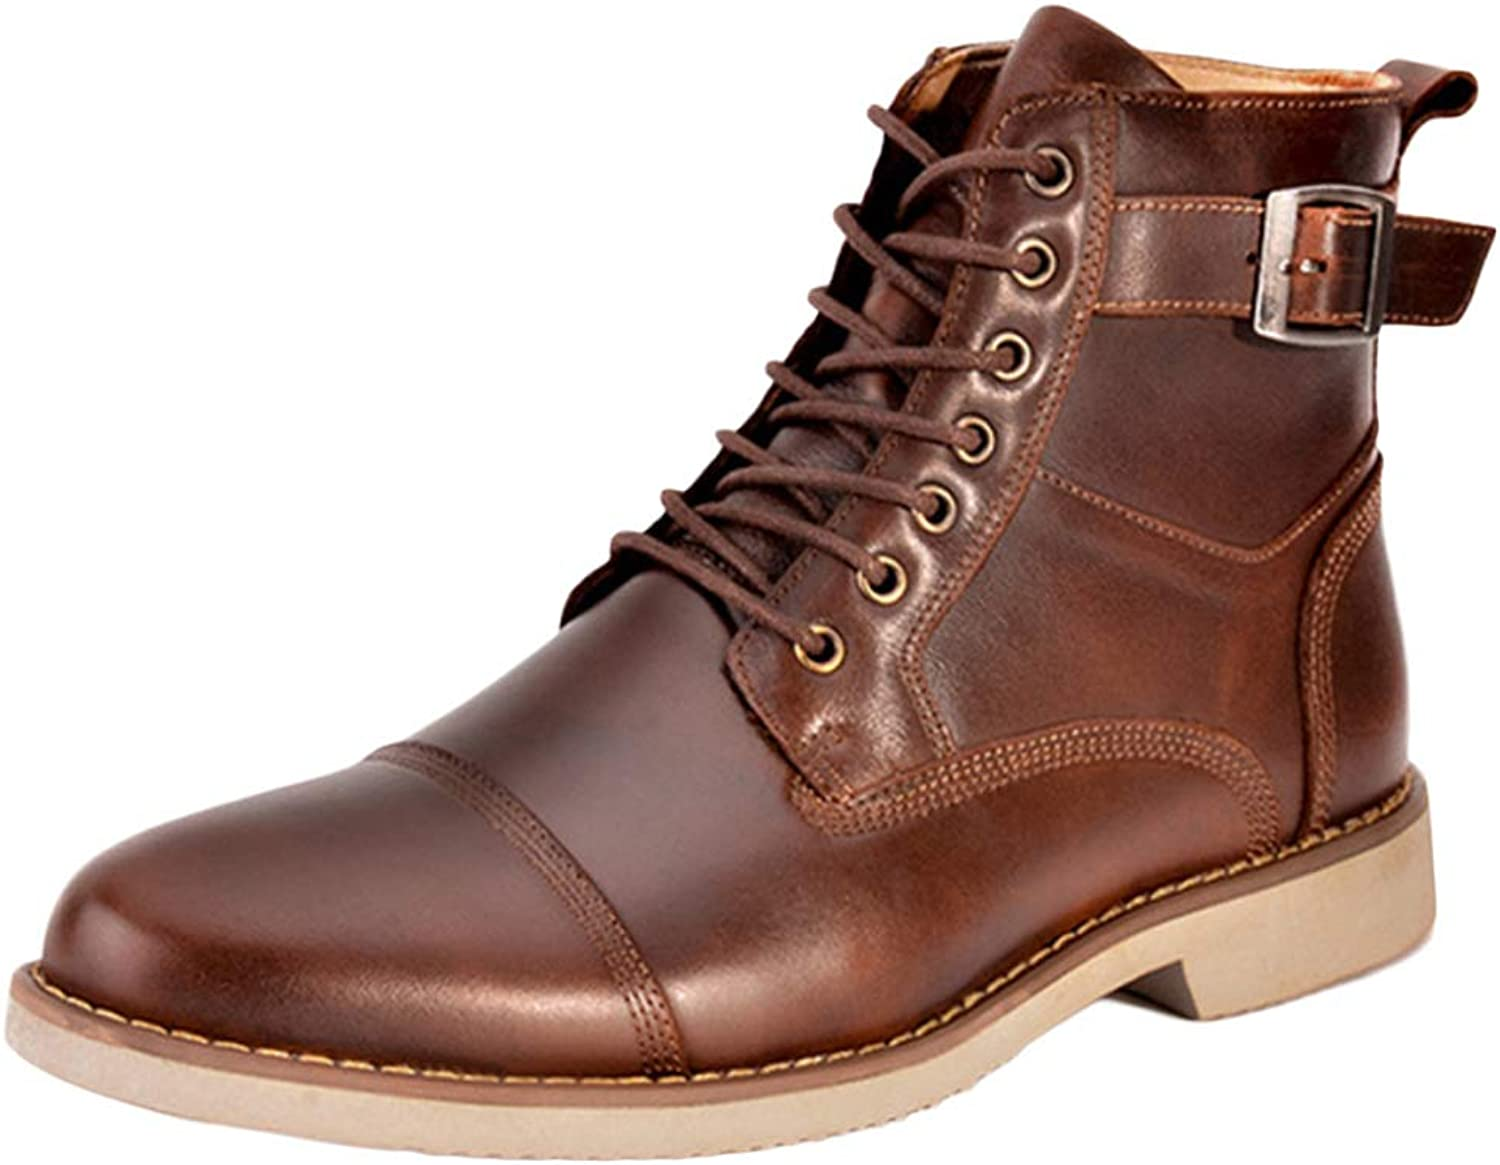 Dr Martens Boots Adult Boots Classic High-top Men's shoes Leather Boots Leather shoes